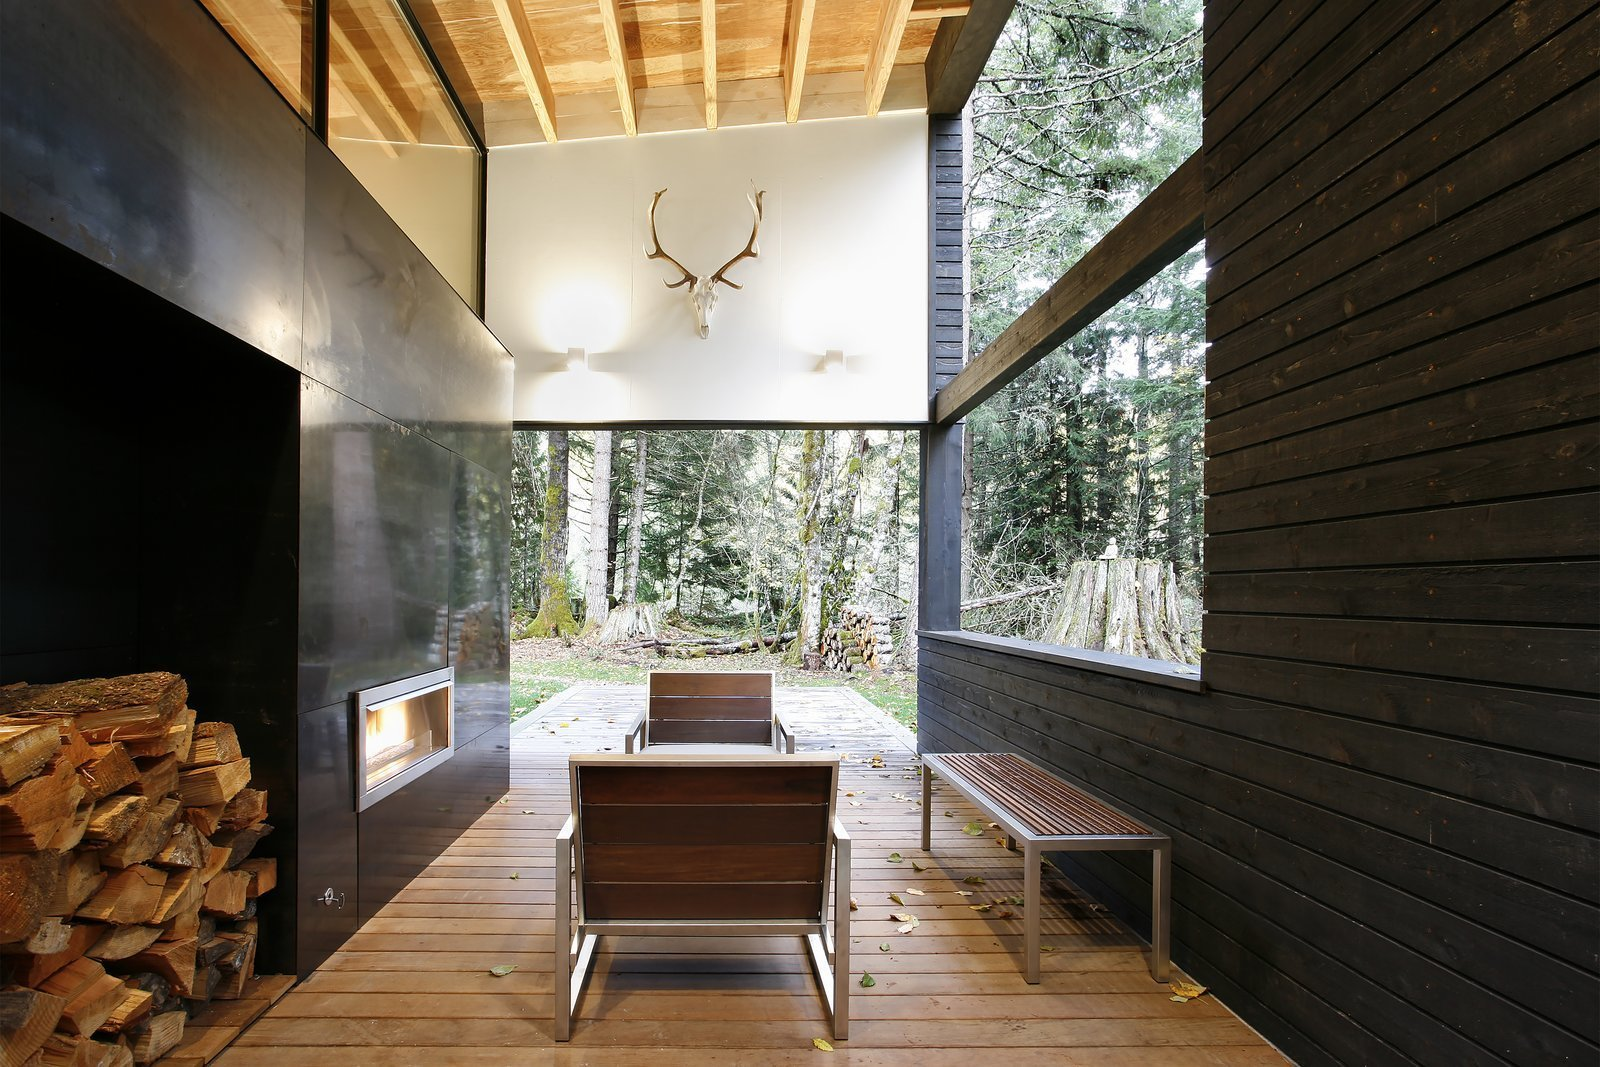 Living Room, Bench, Chair, Wood Burning Fireplace, Ribbon Fireplace, Medium Hardwood Floor, and Wall Lighting In Greenwater, Washington, a courtyard house on a river was designed with a steel-clad fireplace mass that separates the living room from a covered outdoor patio.  Best Photos from 10 Modern Fireplaces That Make For Inviting Interiors